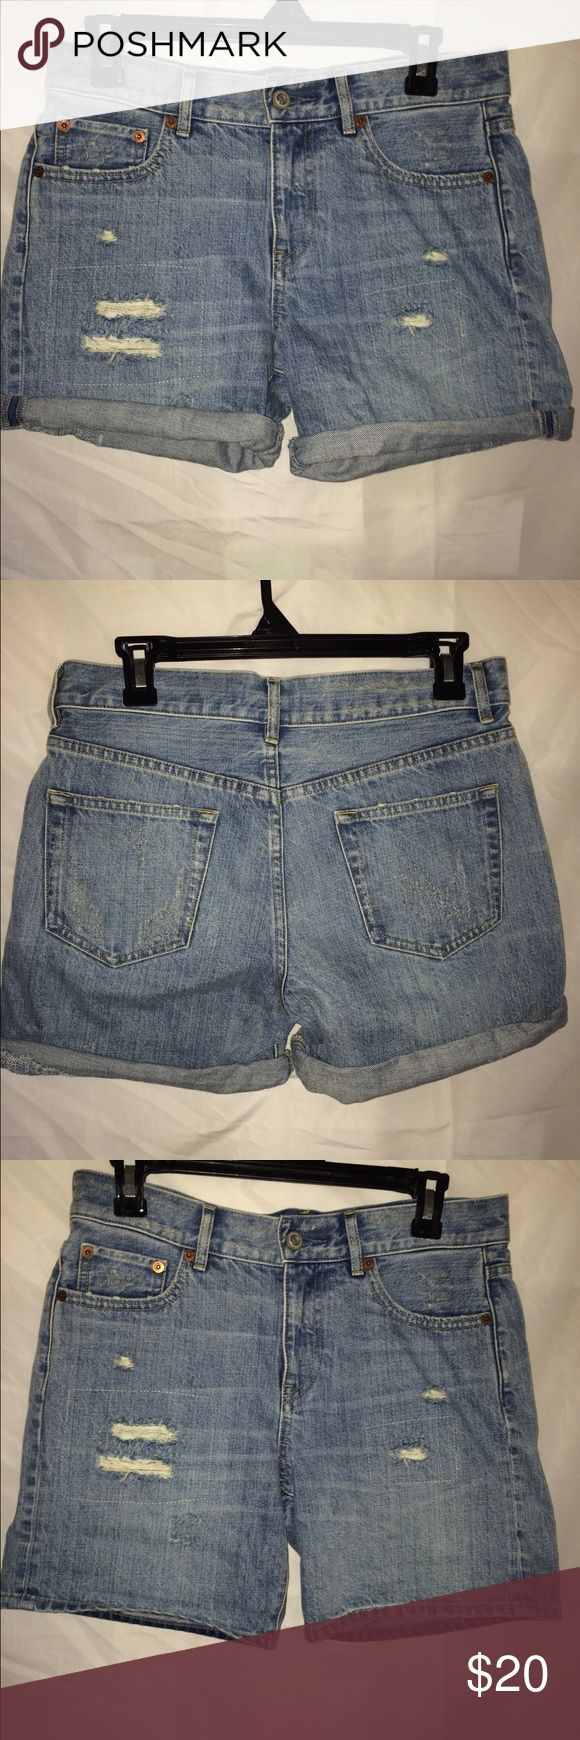 MAKE AN OFFER Uniqlo denim shorts MAKE AN OFFER 100% cotton can be cuffed. Size 25 but run a little big. Never worn but I removed the tags. Uniqlo Shorts Jean Shorts